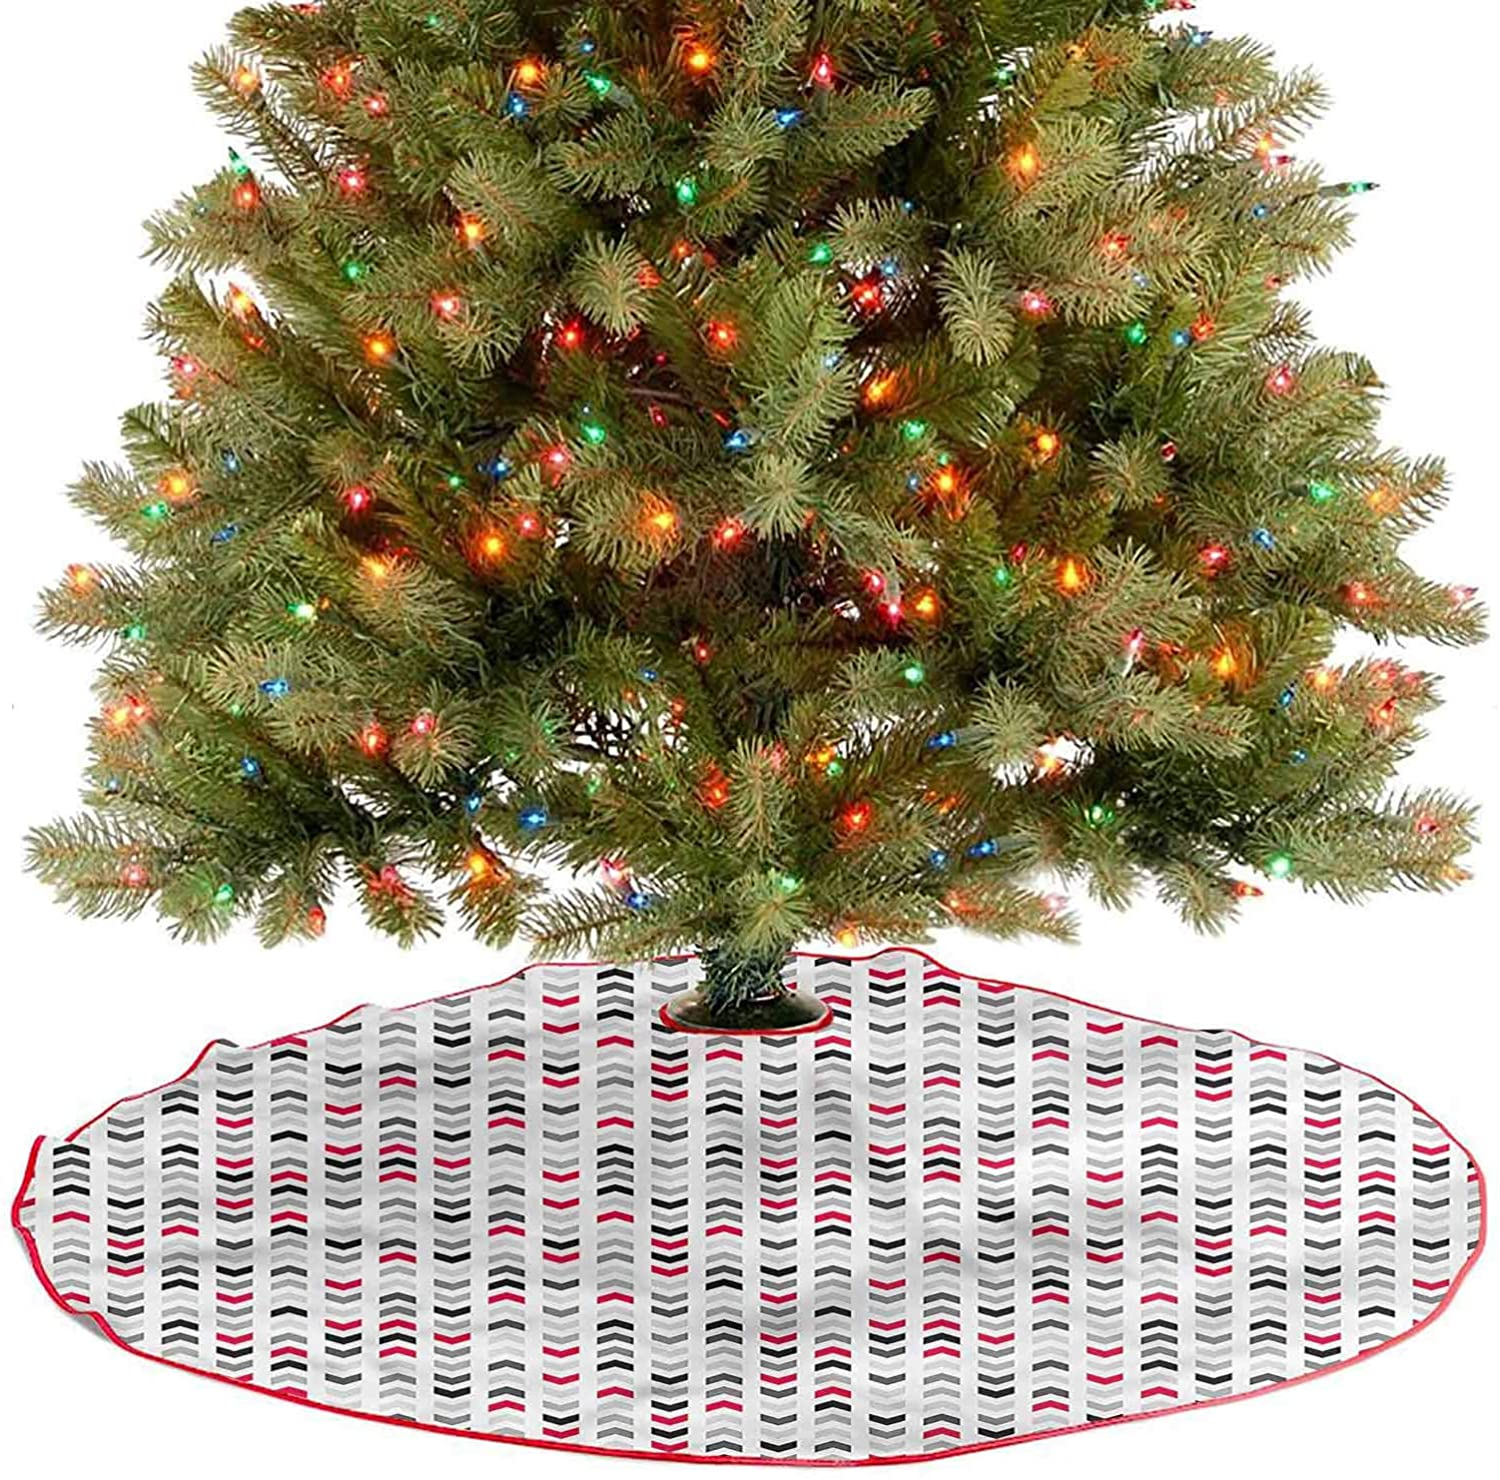 ThinkingPower Tree Skirt Decor Red Zig Zags Chevron Traditional Christmas Tree Mat for Christmas Holiday Party Diameter - 48 Inch